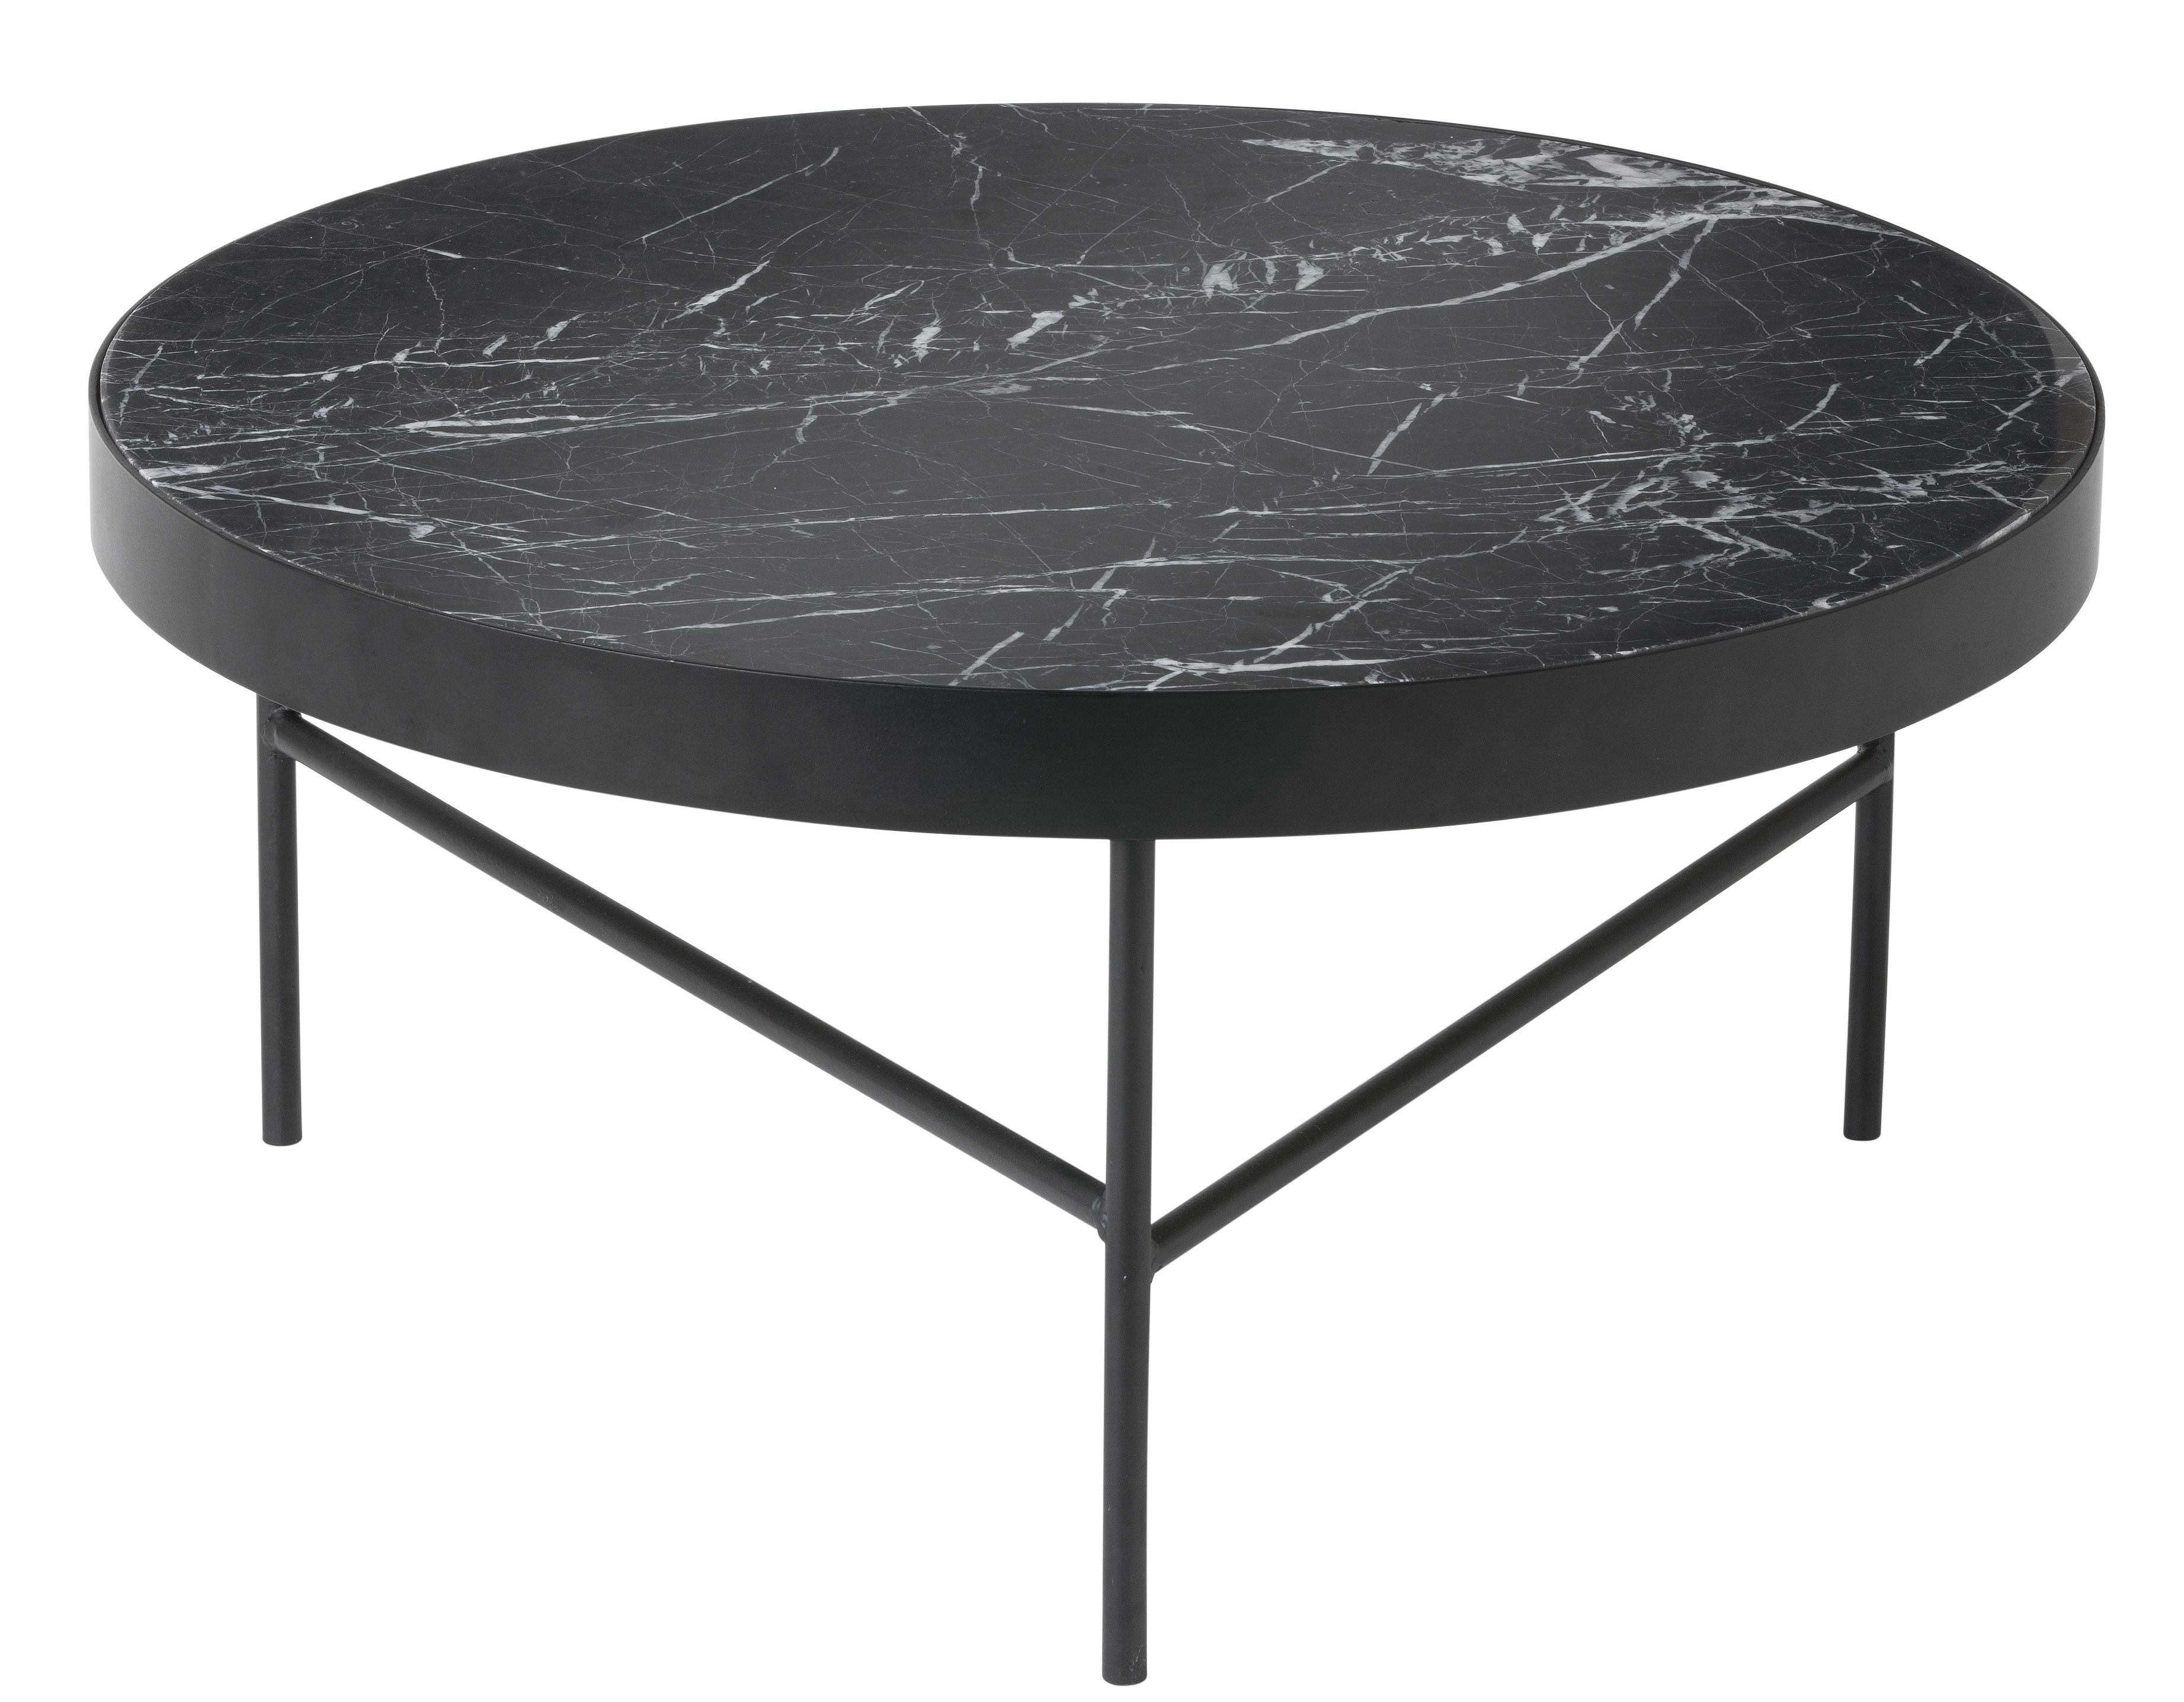 Table Marbre Design Marble Large Coffee Table Ø 70 5 X H 35 Cm By Ferm Living